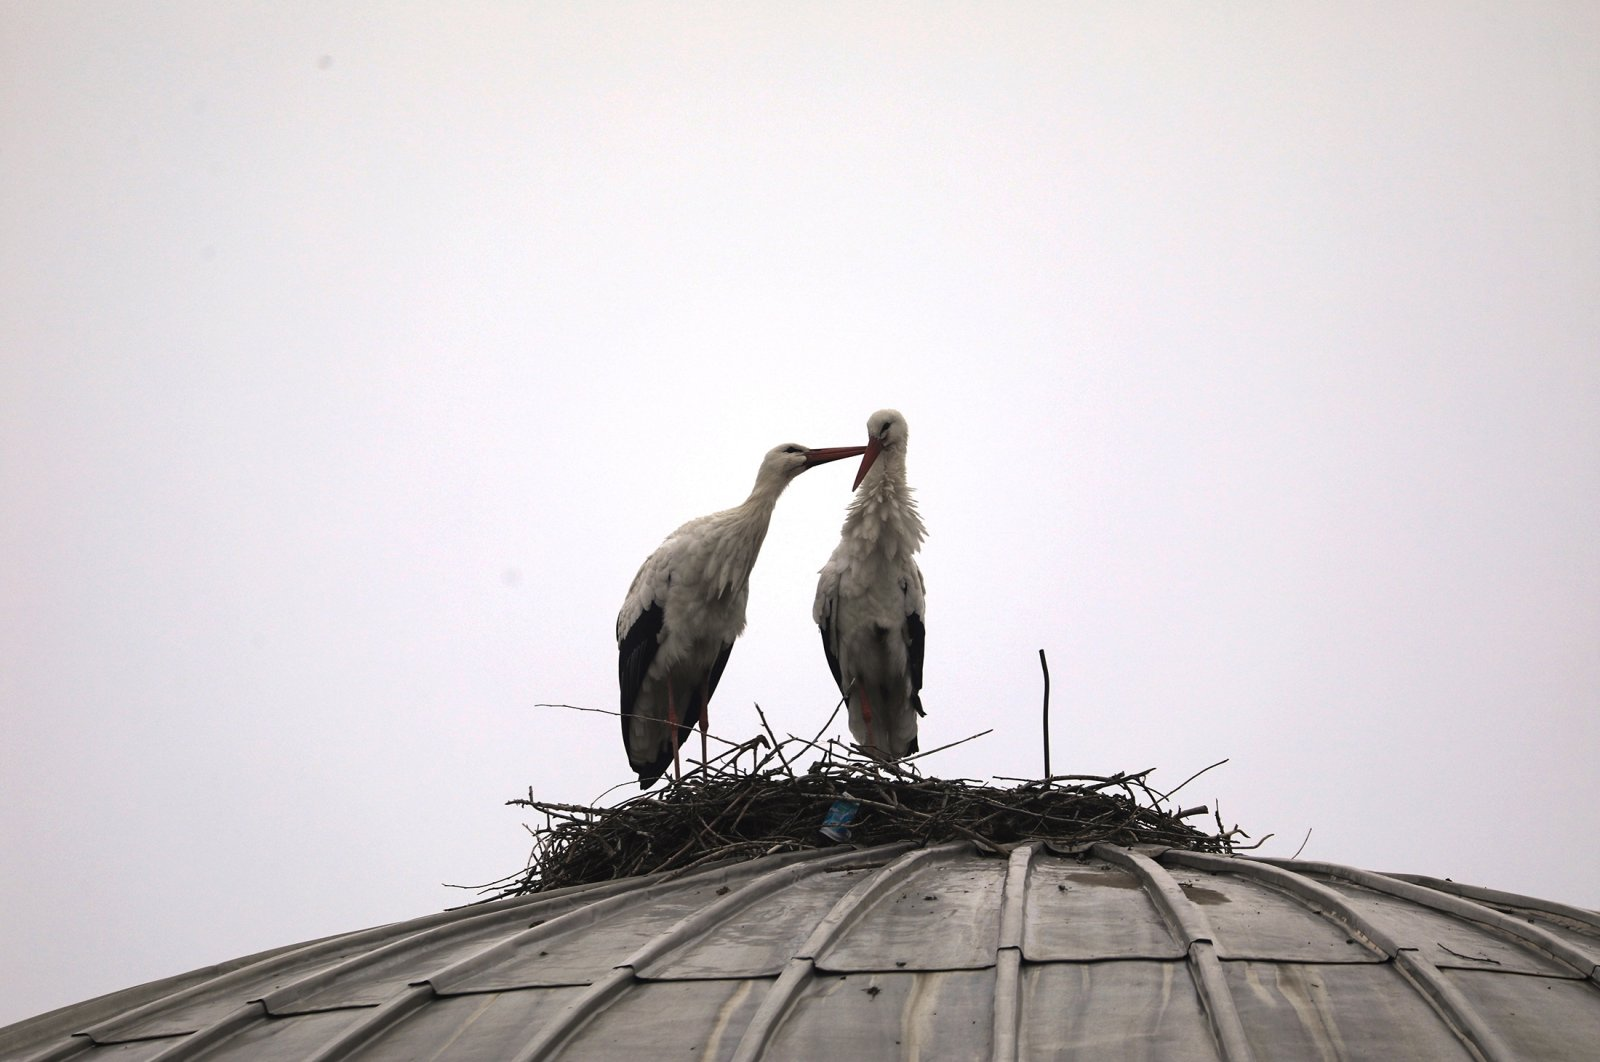 Two storks in Bingöl, southeastern Turkey have made the Sanayi Sitesi Mosque their home for these past four years. (AA Photo)